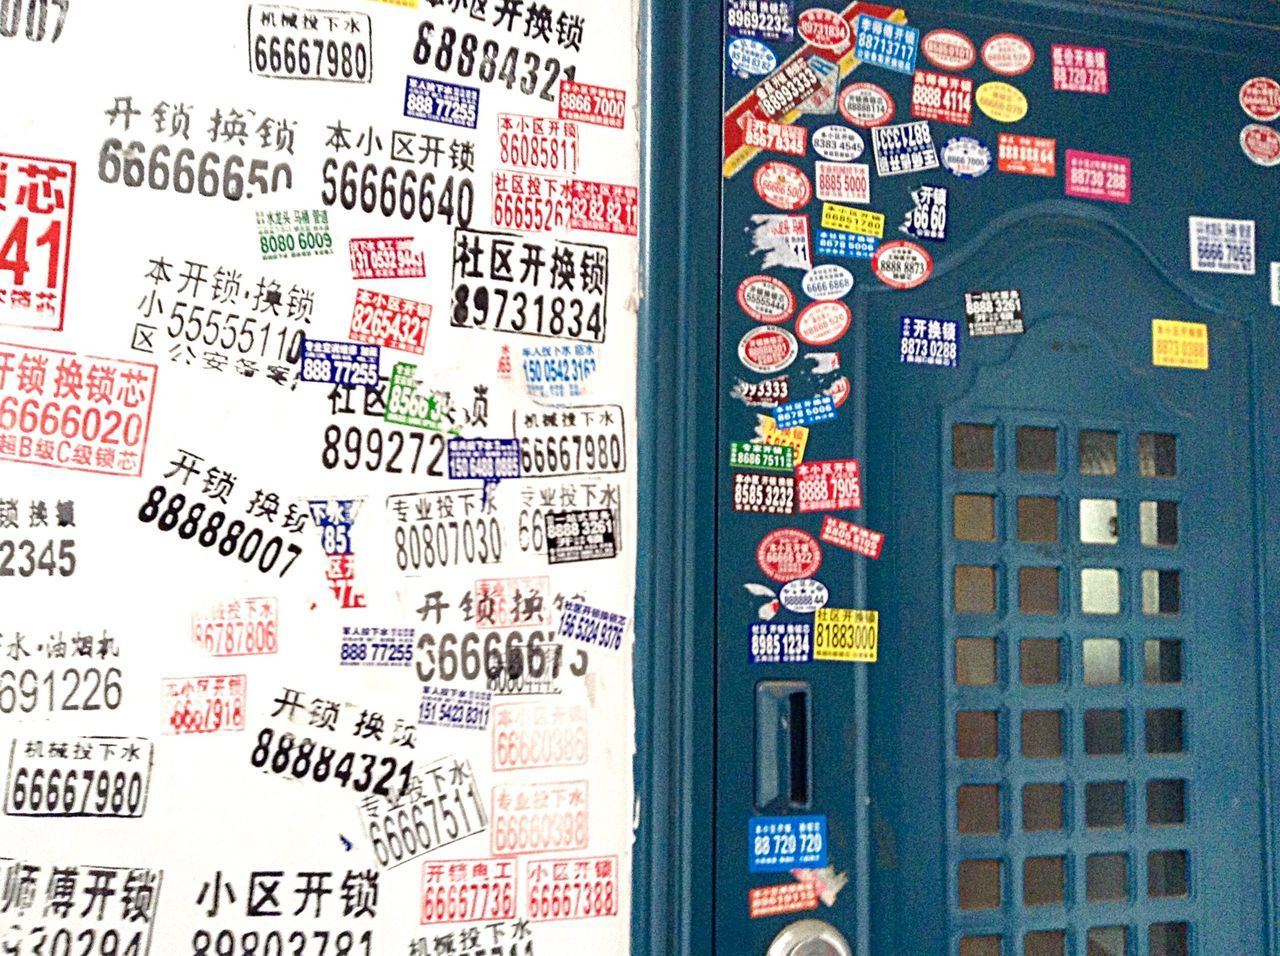 Advertisements all over the wall Advertisement Advertising Ads Wall All Over The Wall Door Apartment Building Stairway Interior Style Travel Qingdao China China Decoration Colour Of Life Culture